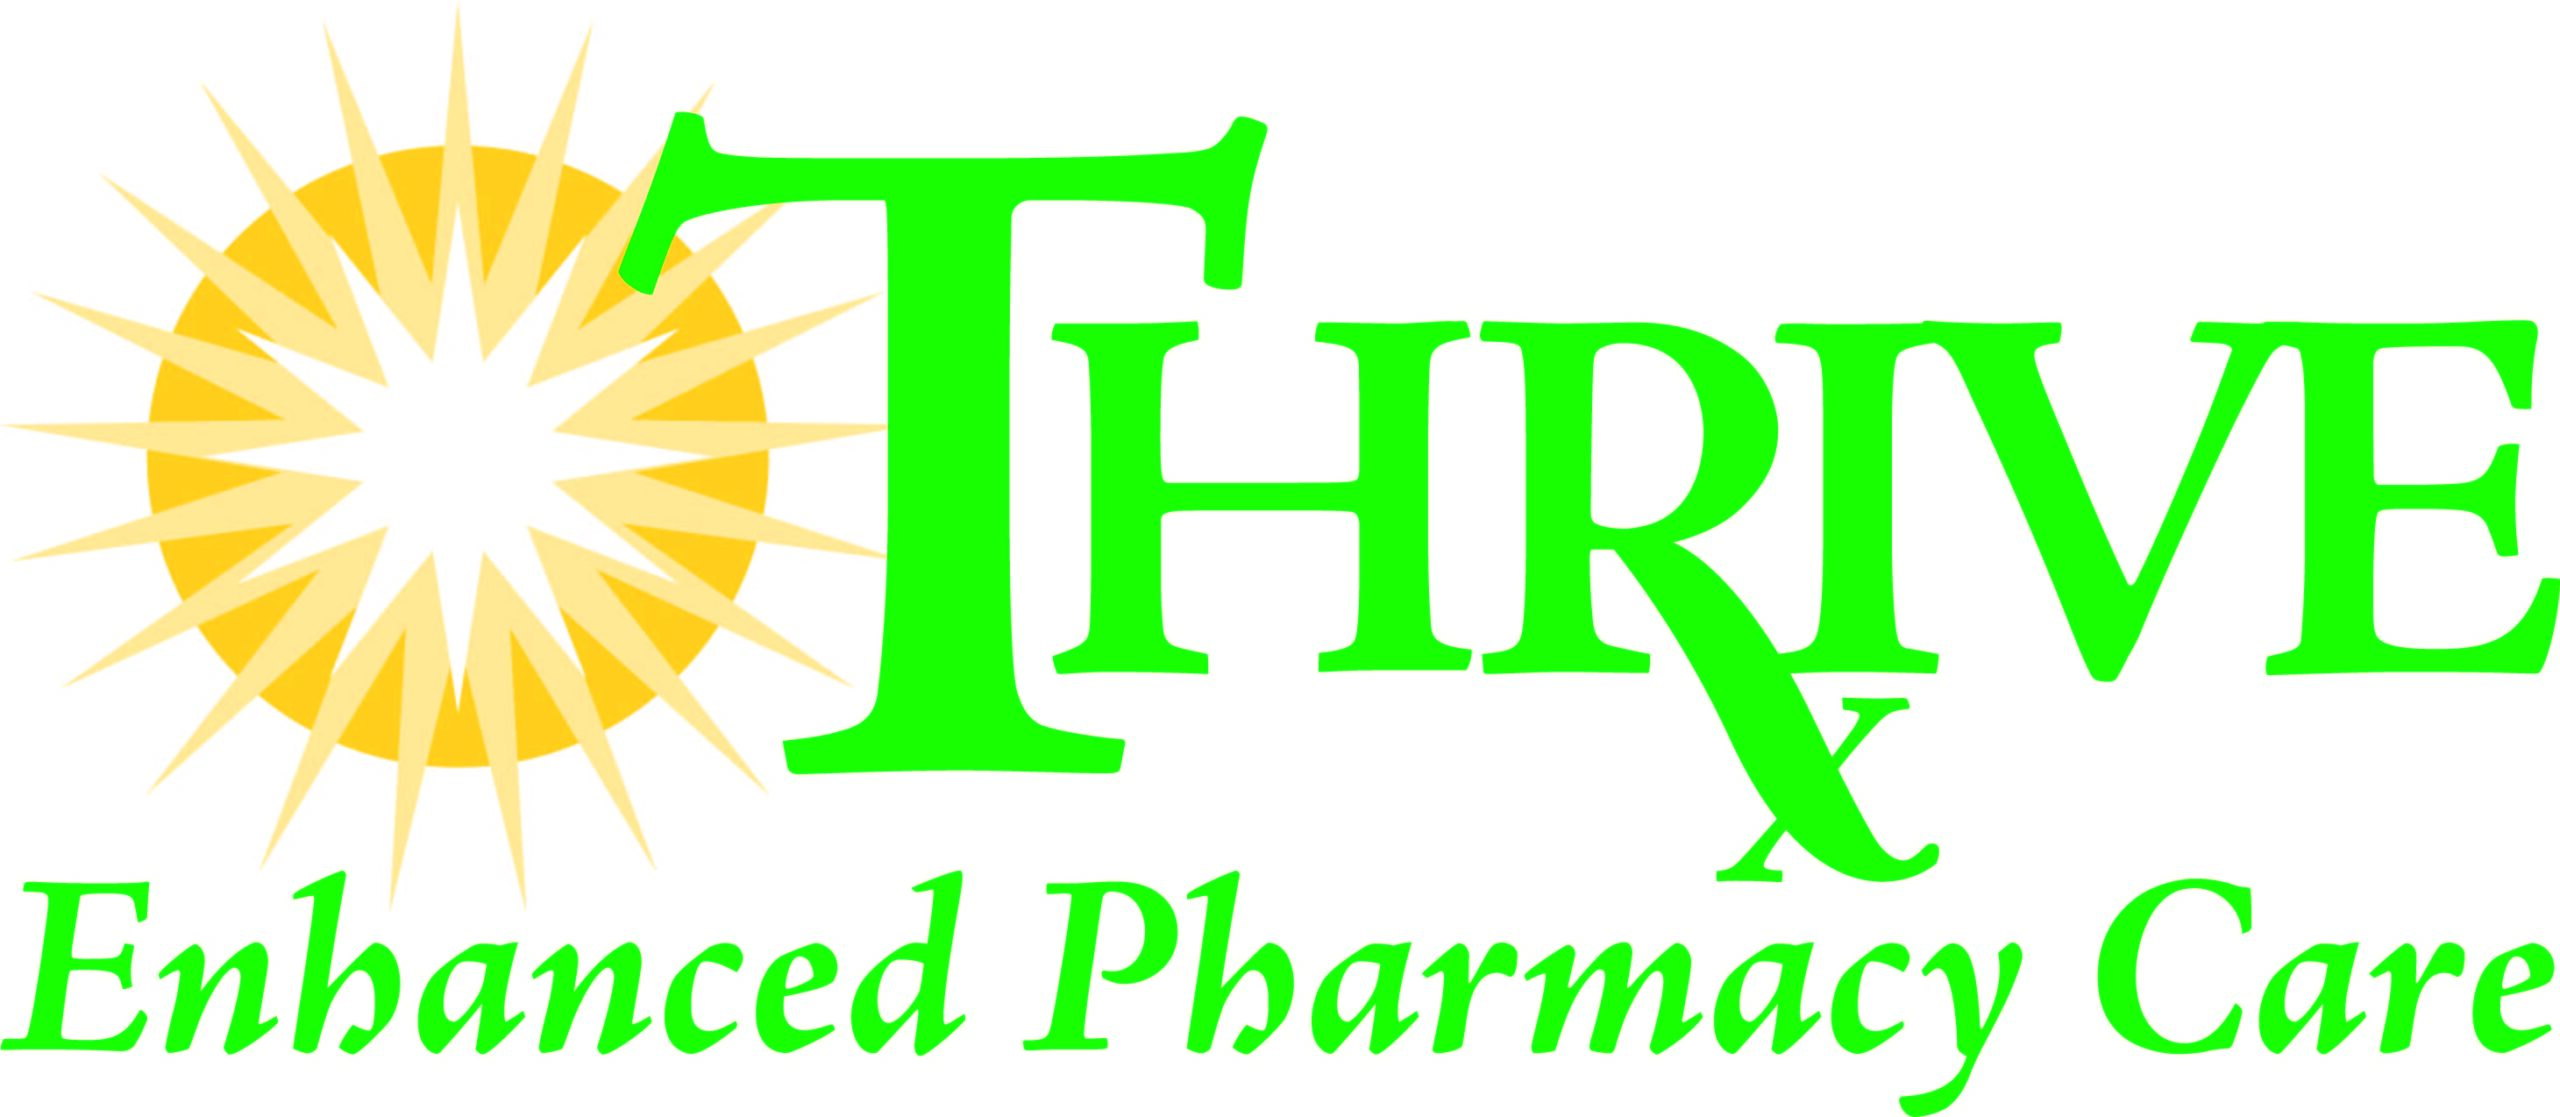 Thrive Enhanced Pharmacy Care